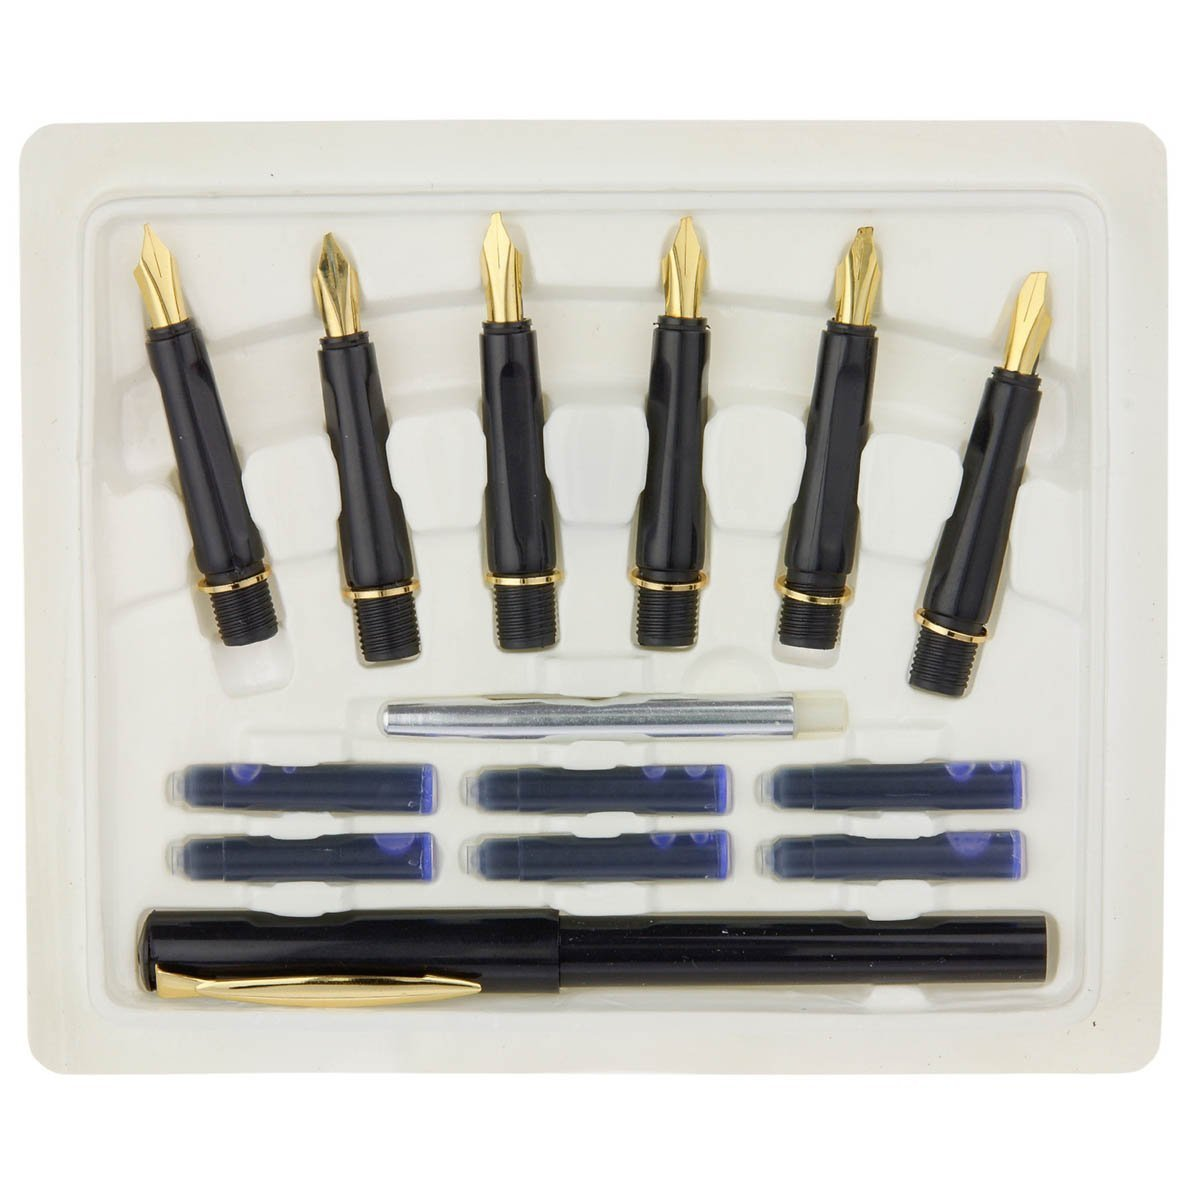 Sky Glory Caligraphy Pen 6 set